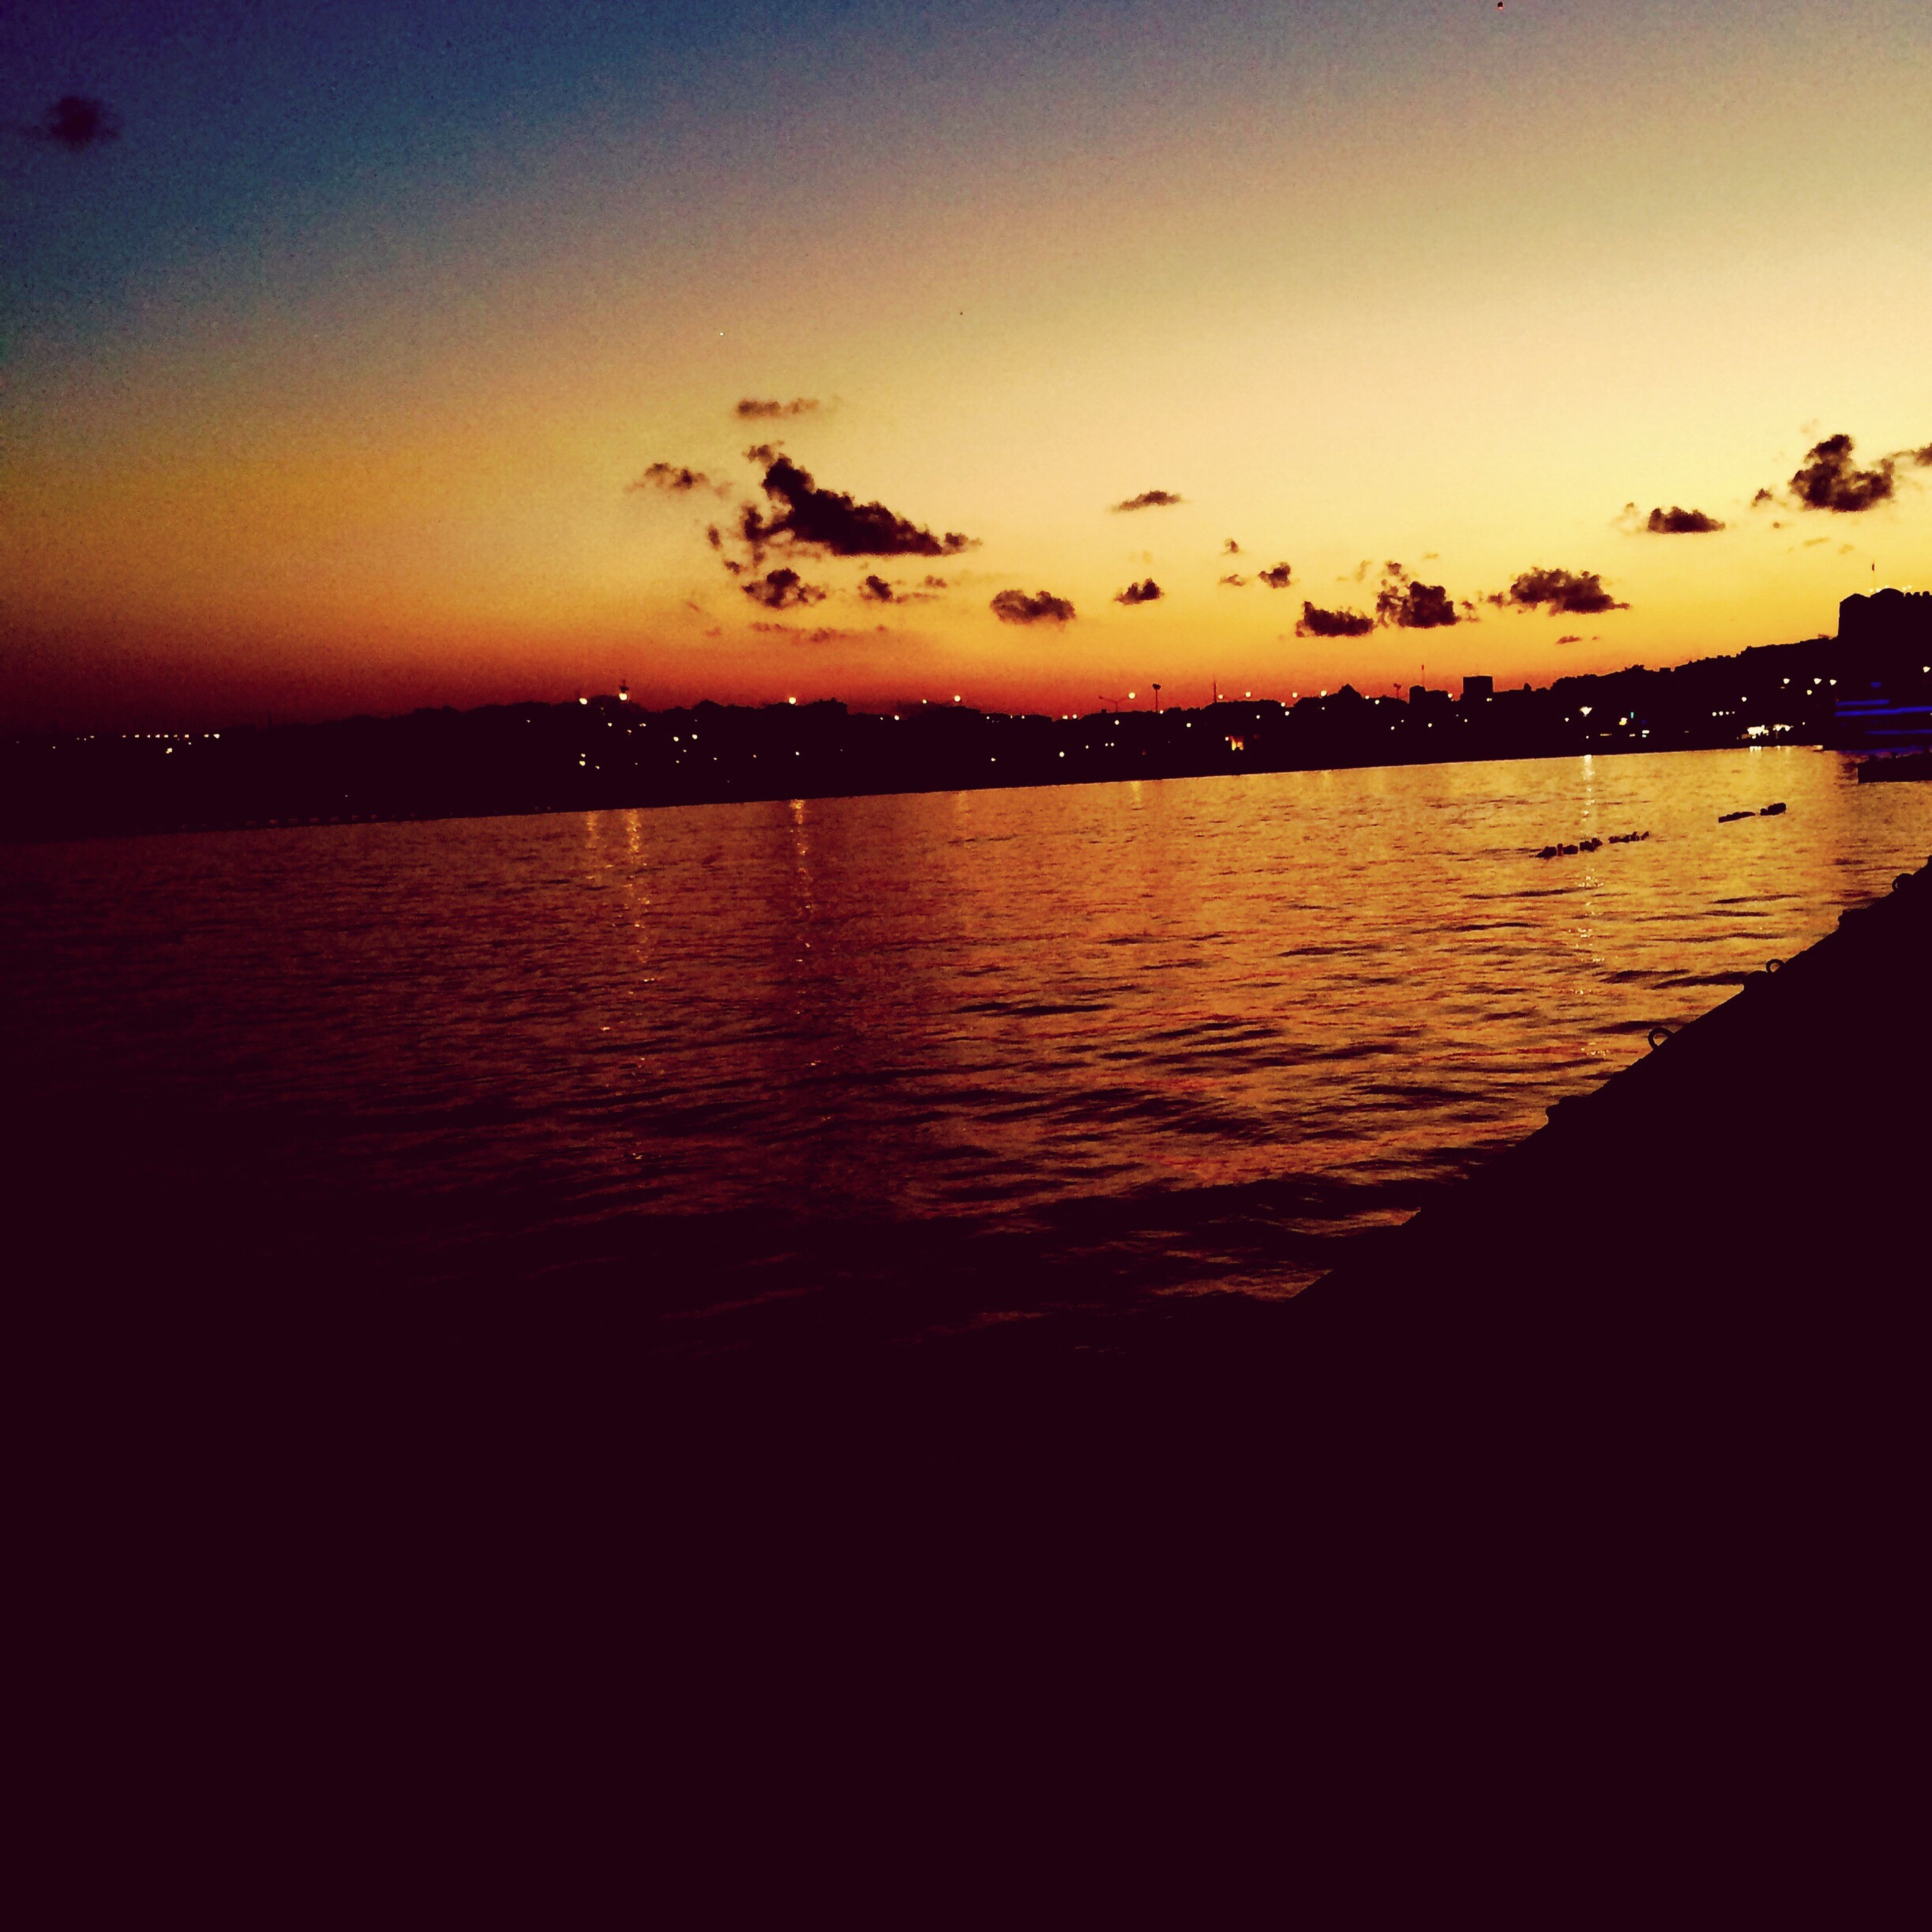 sunset, tranquil scene, scenics, water, tranquility, dusk, beauty in nature, sky, idyllic, nature, majestic, orange color, remote, non-urban scene, cloud - sky, dark, calm, sea, vibrant color, mountain, flying, no people, atmosphere, waterfront, seascape, distant, dramatic sky, atmospheric mood